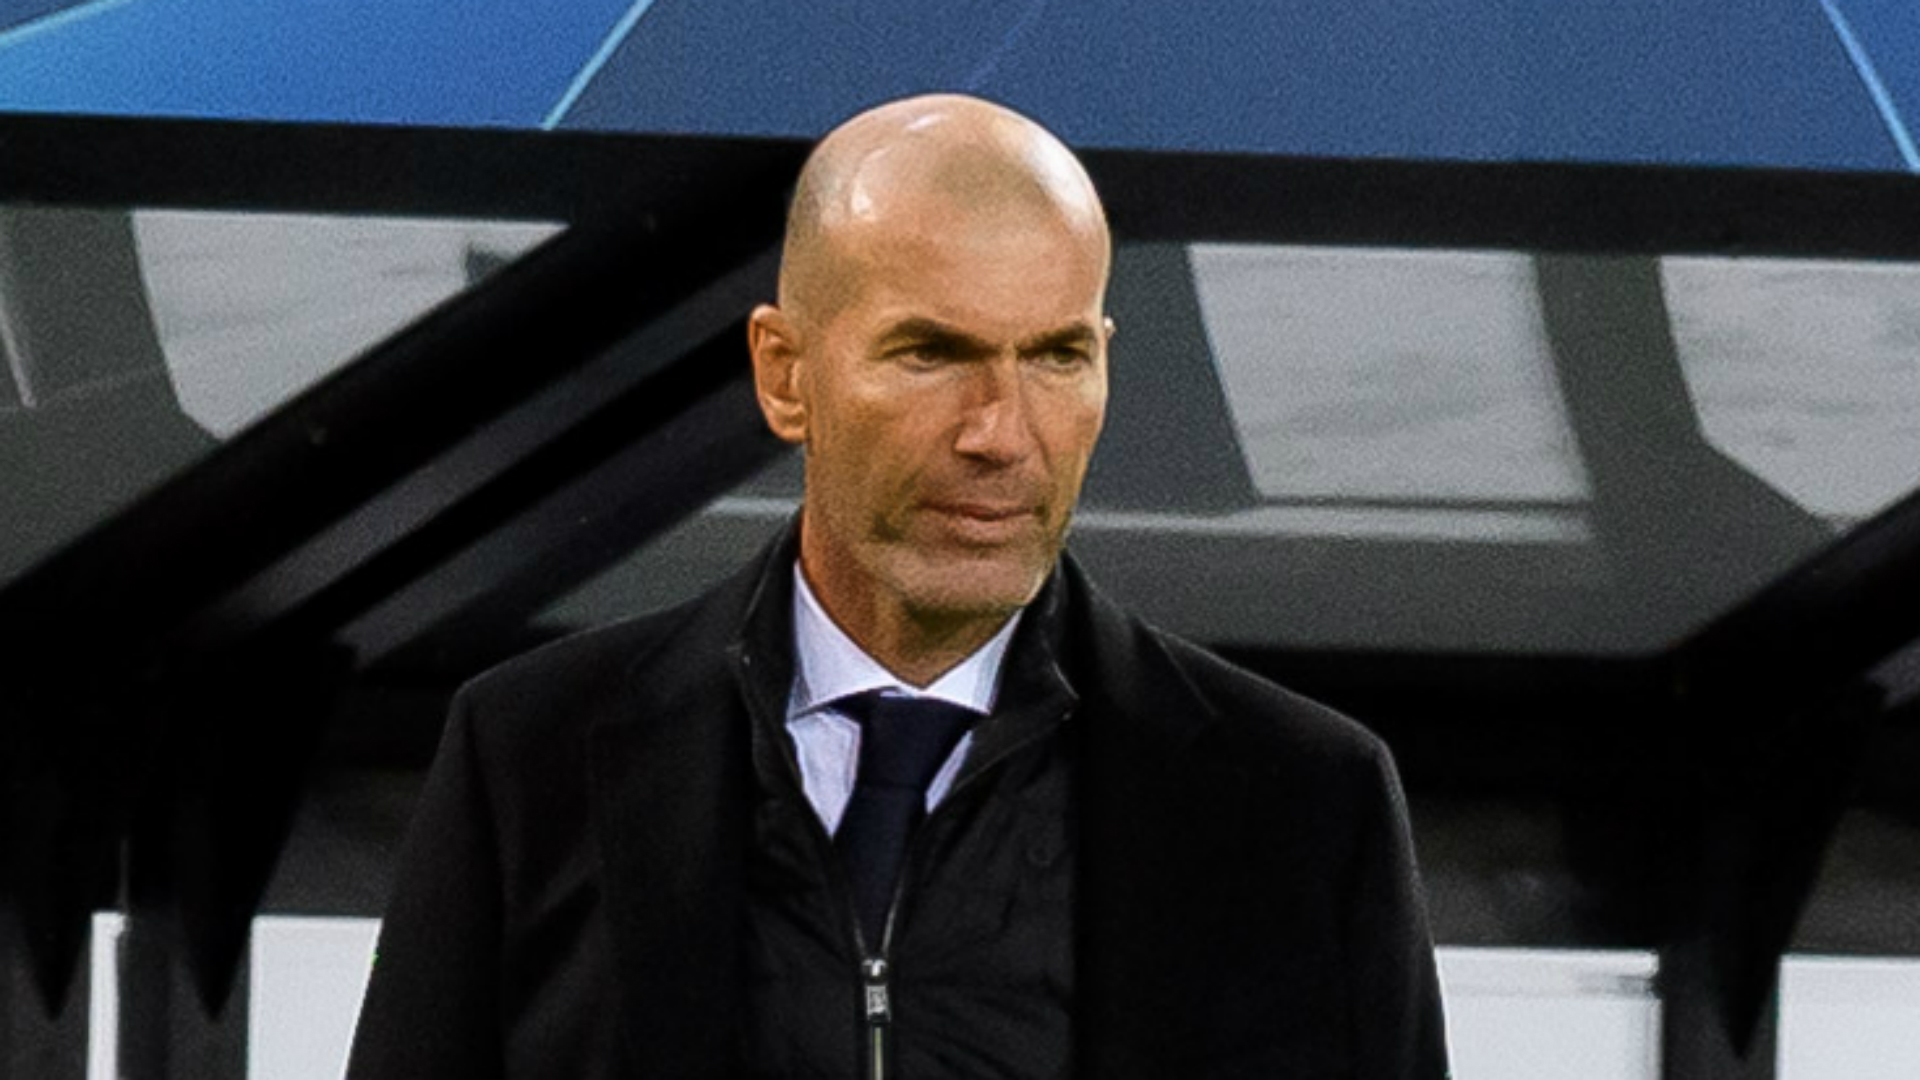 Zidane offers no excuses after Real Madrid shocker - 'We played a bad game, blame me'